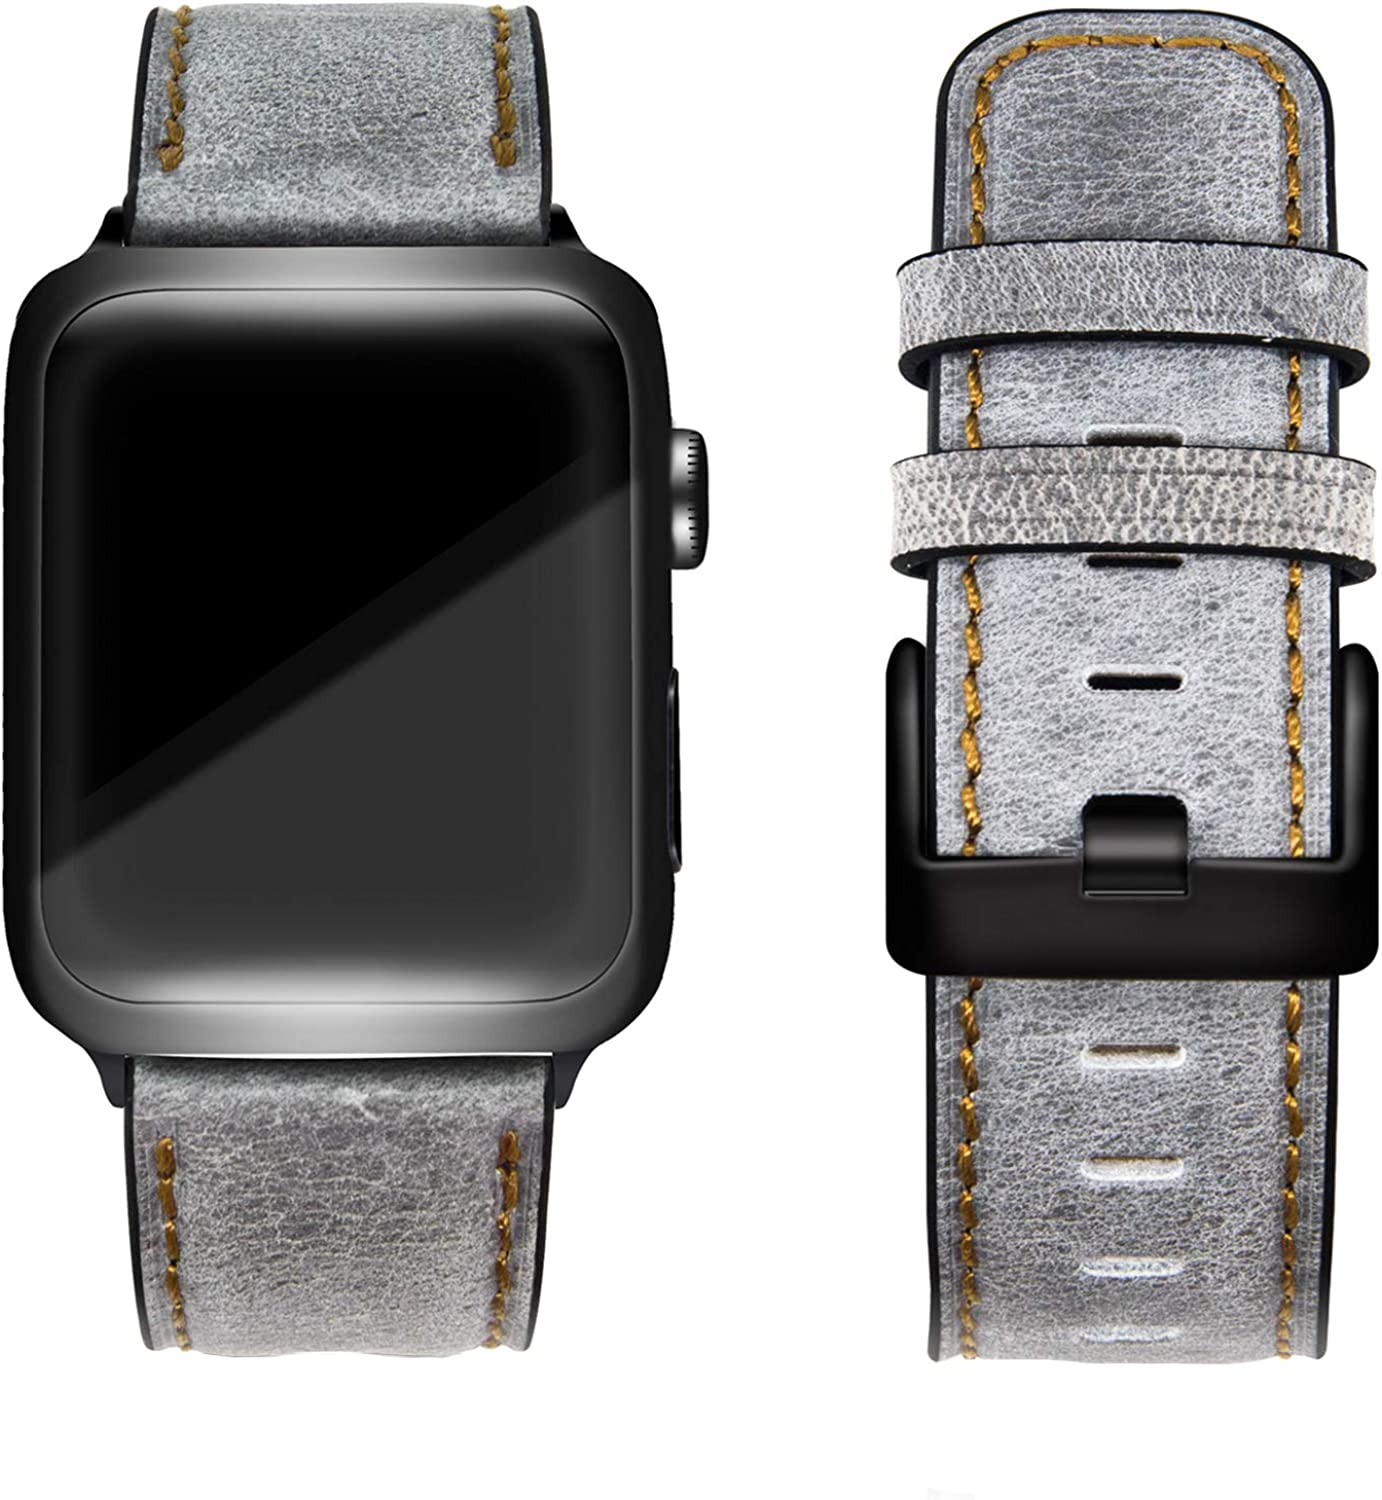 Lifendear Vintage Leather Band Compatible with Apple Watch Bands 38mm 40mm 42mm 44mm Retro & Vintage Double Head Layer Cowhide Band for iWatch Series 6/SE/5/4/3/2/1 Soft&Comfort Men Women Top Grain Genuine Leather iWatch band